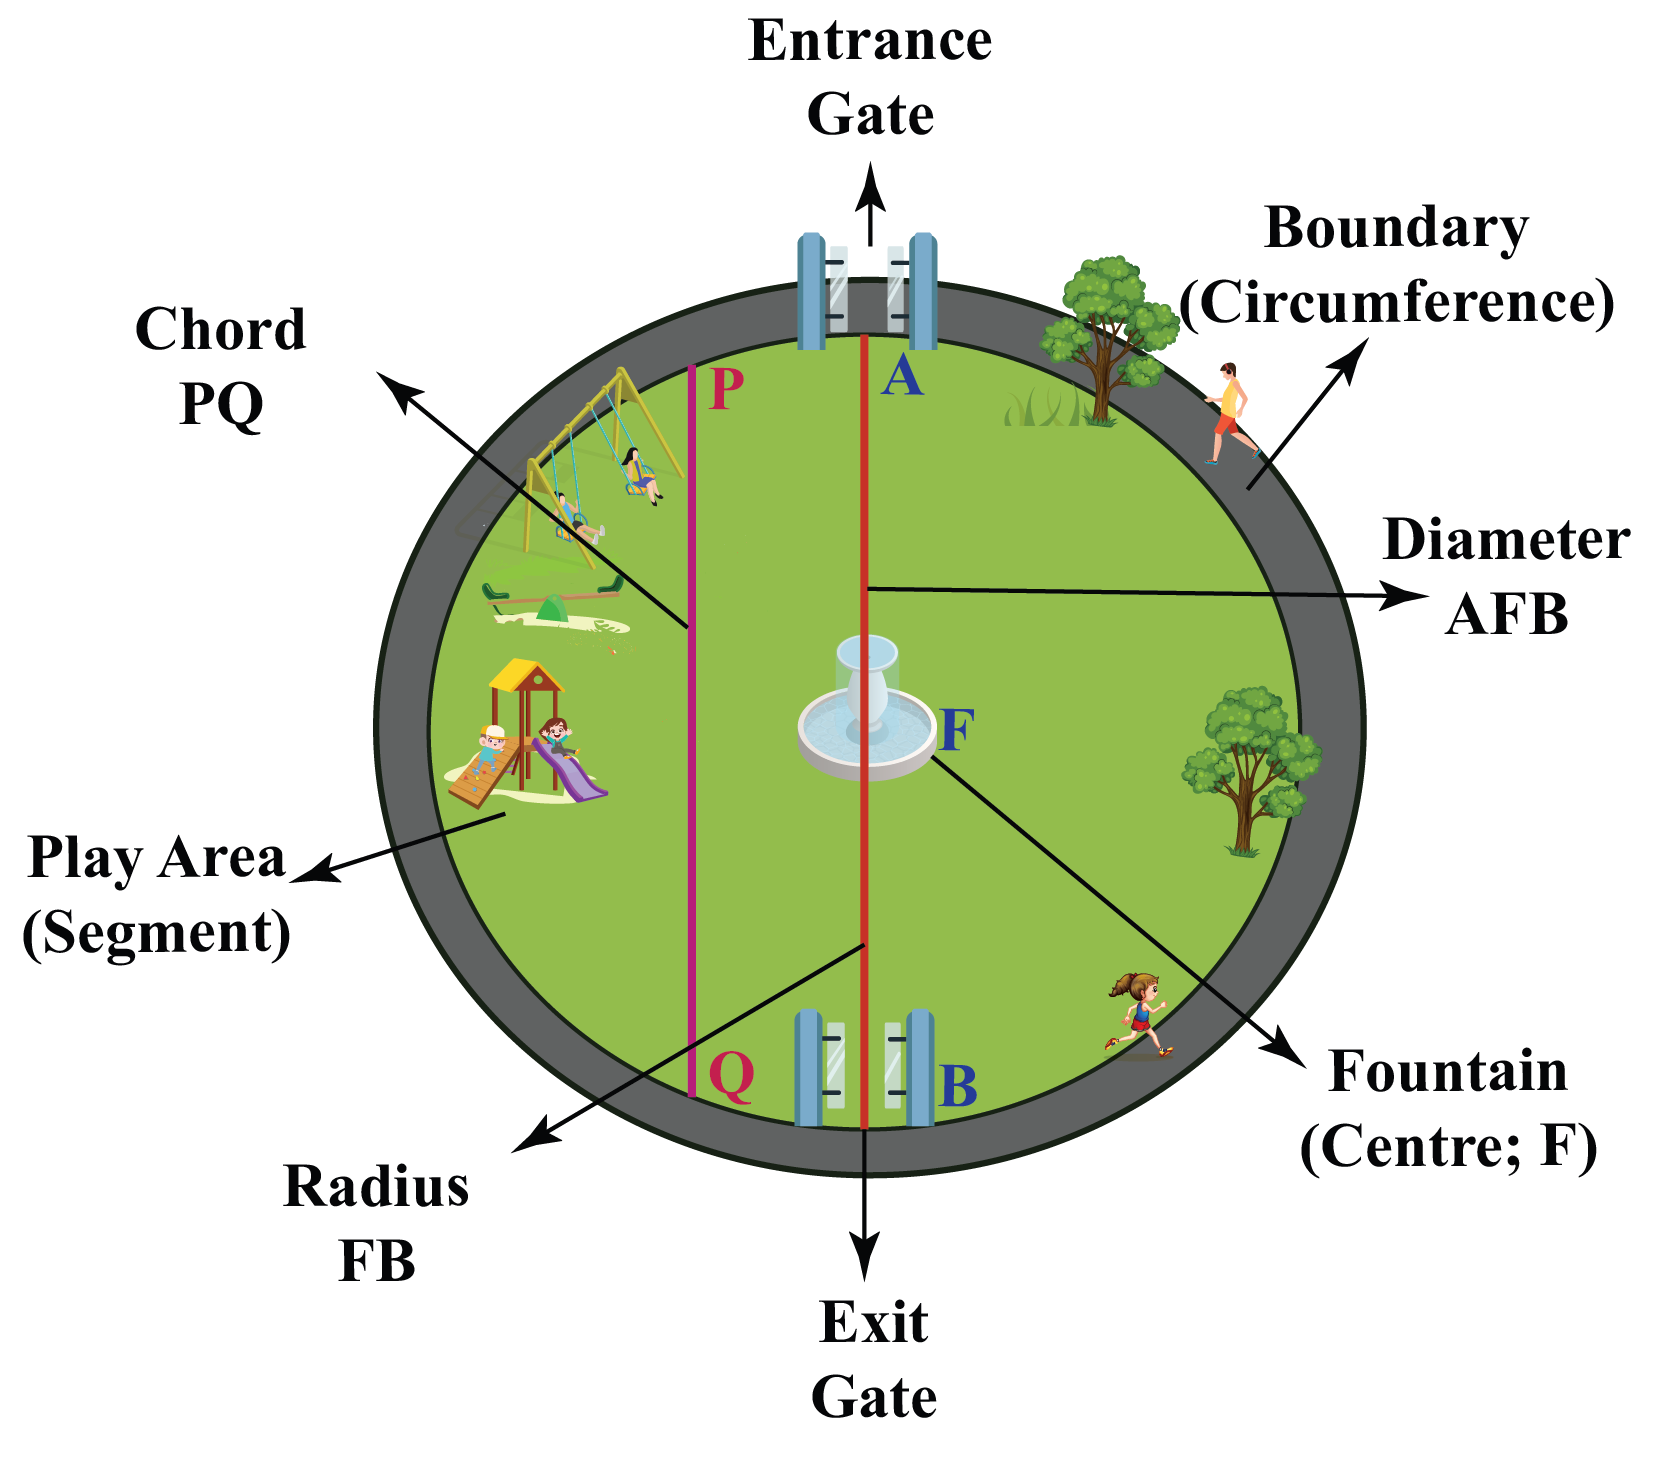 A circular park labelled with the circumference, radius, diameter, chord, play area, entrance gate, exit gate, and fountain.